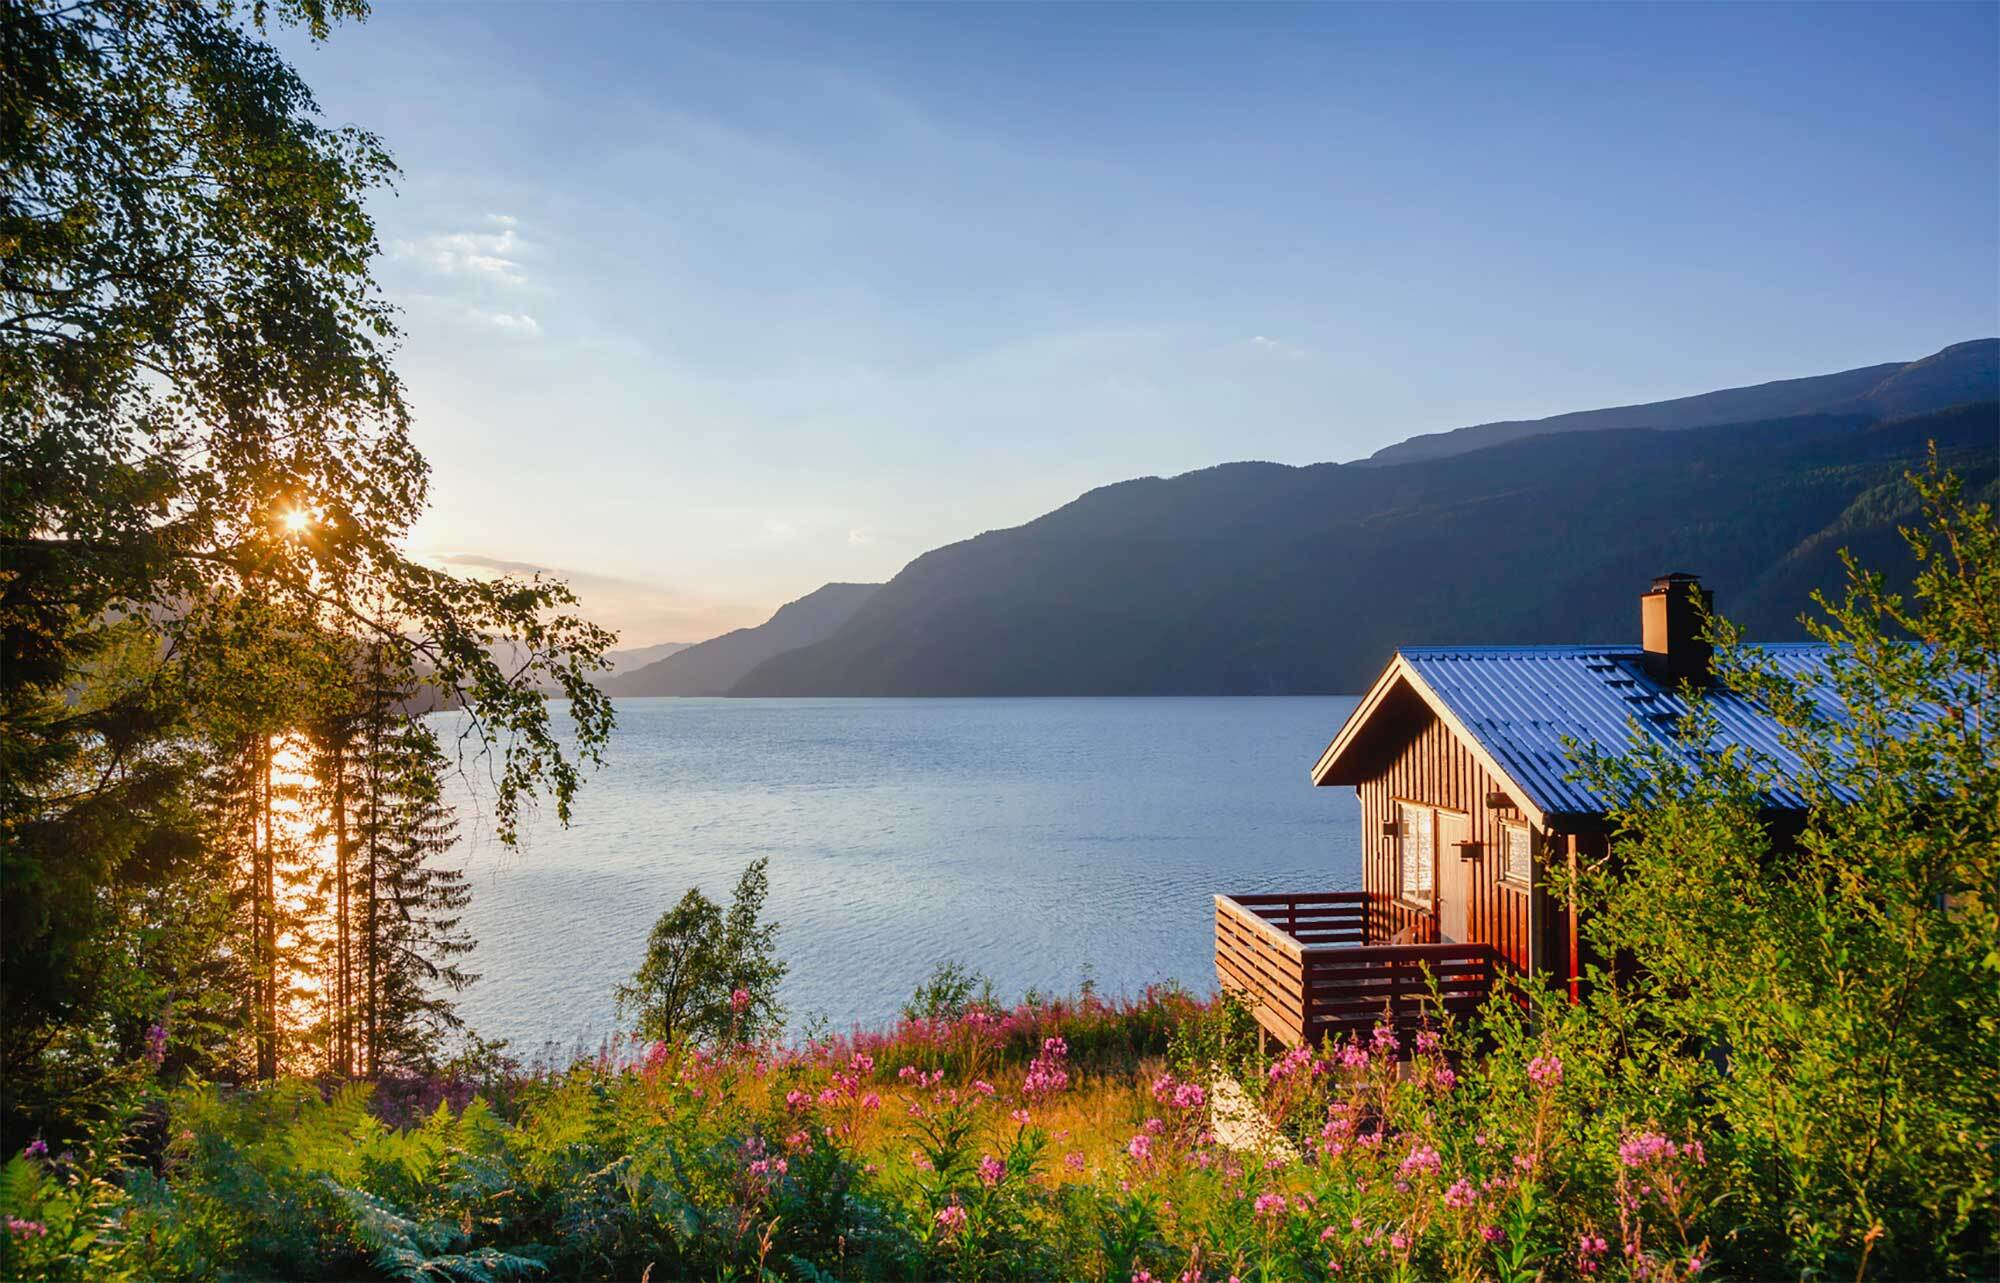 Cabin in front of lake and mountains.